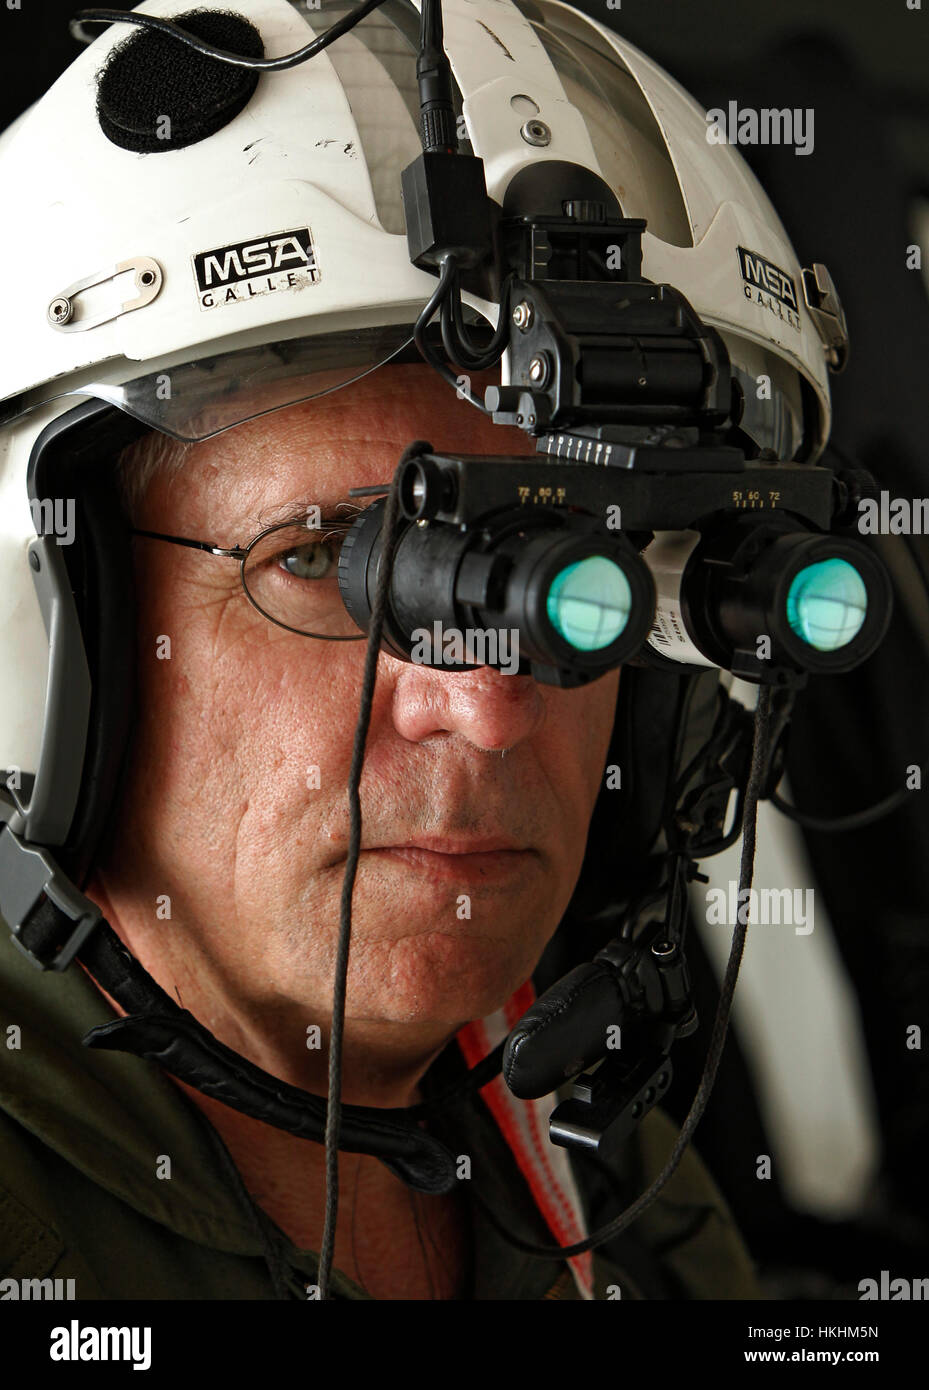 10/13/11 -  Texas Department of Public Safety pilot Lt. Johhny Prince II shows the night vision goggles he wears Stock Photo